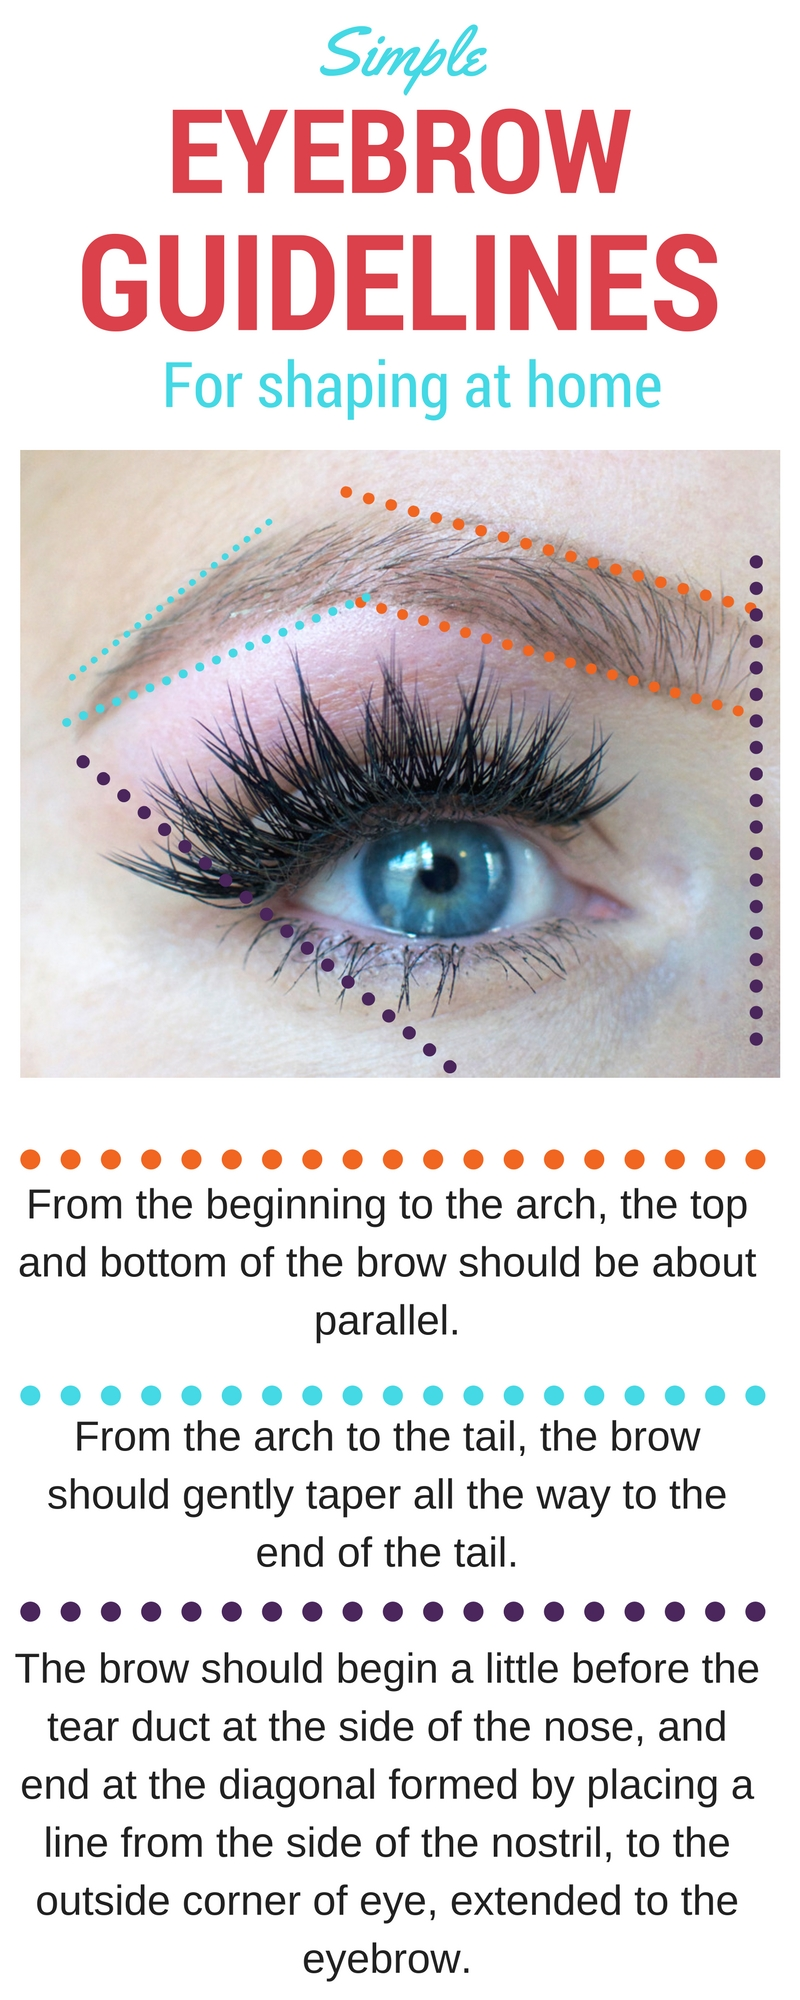 Basic guide for how to shape your eyebrows | How to Wax Your Eyebrows at Home by Popular Utah beauty blogger, Kara Metta: Pinterest image of how to shape eyebrows.